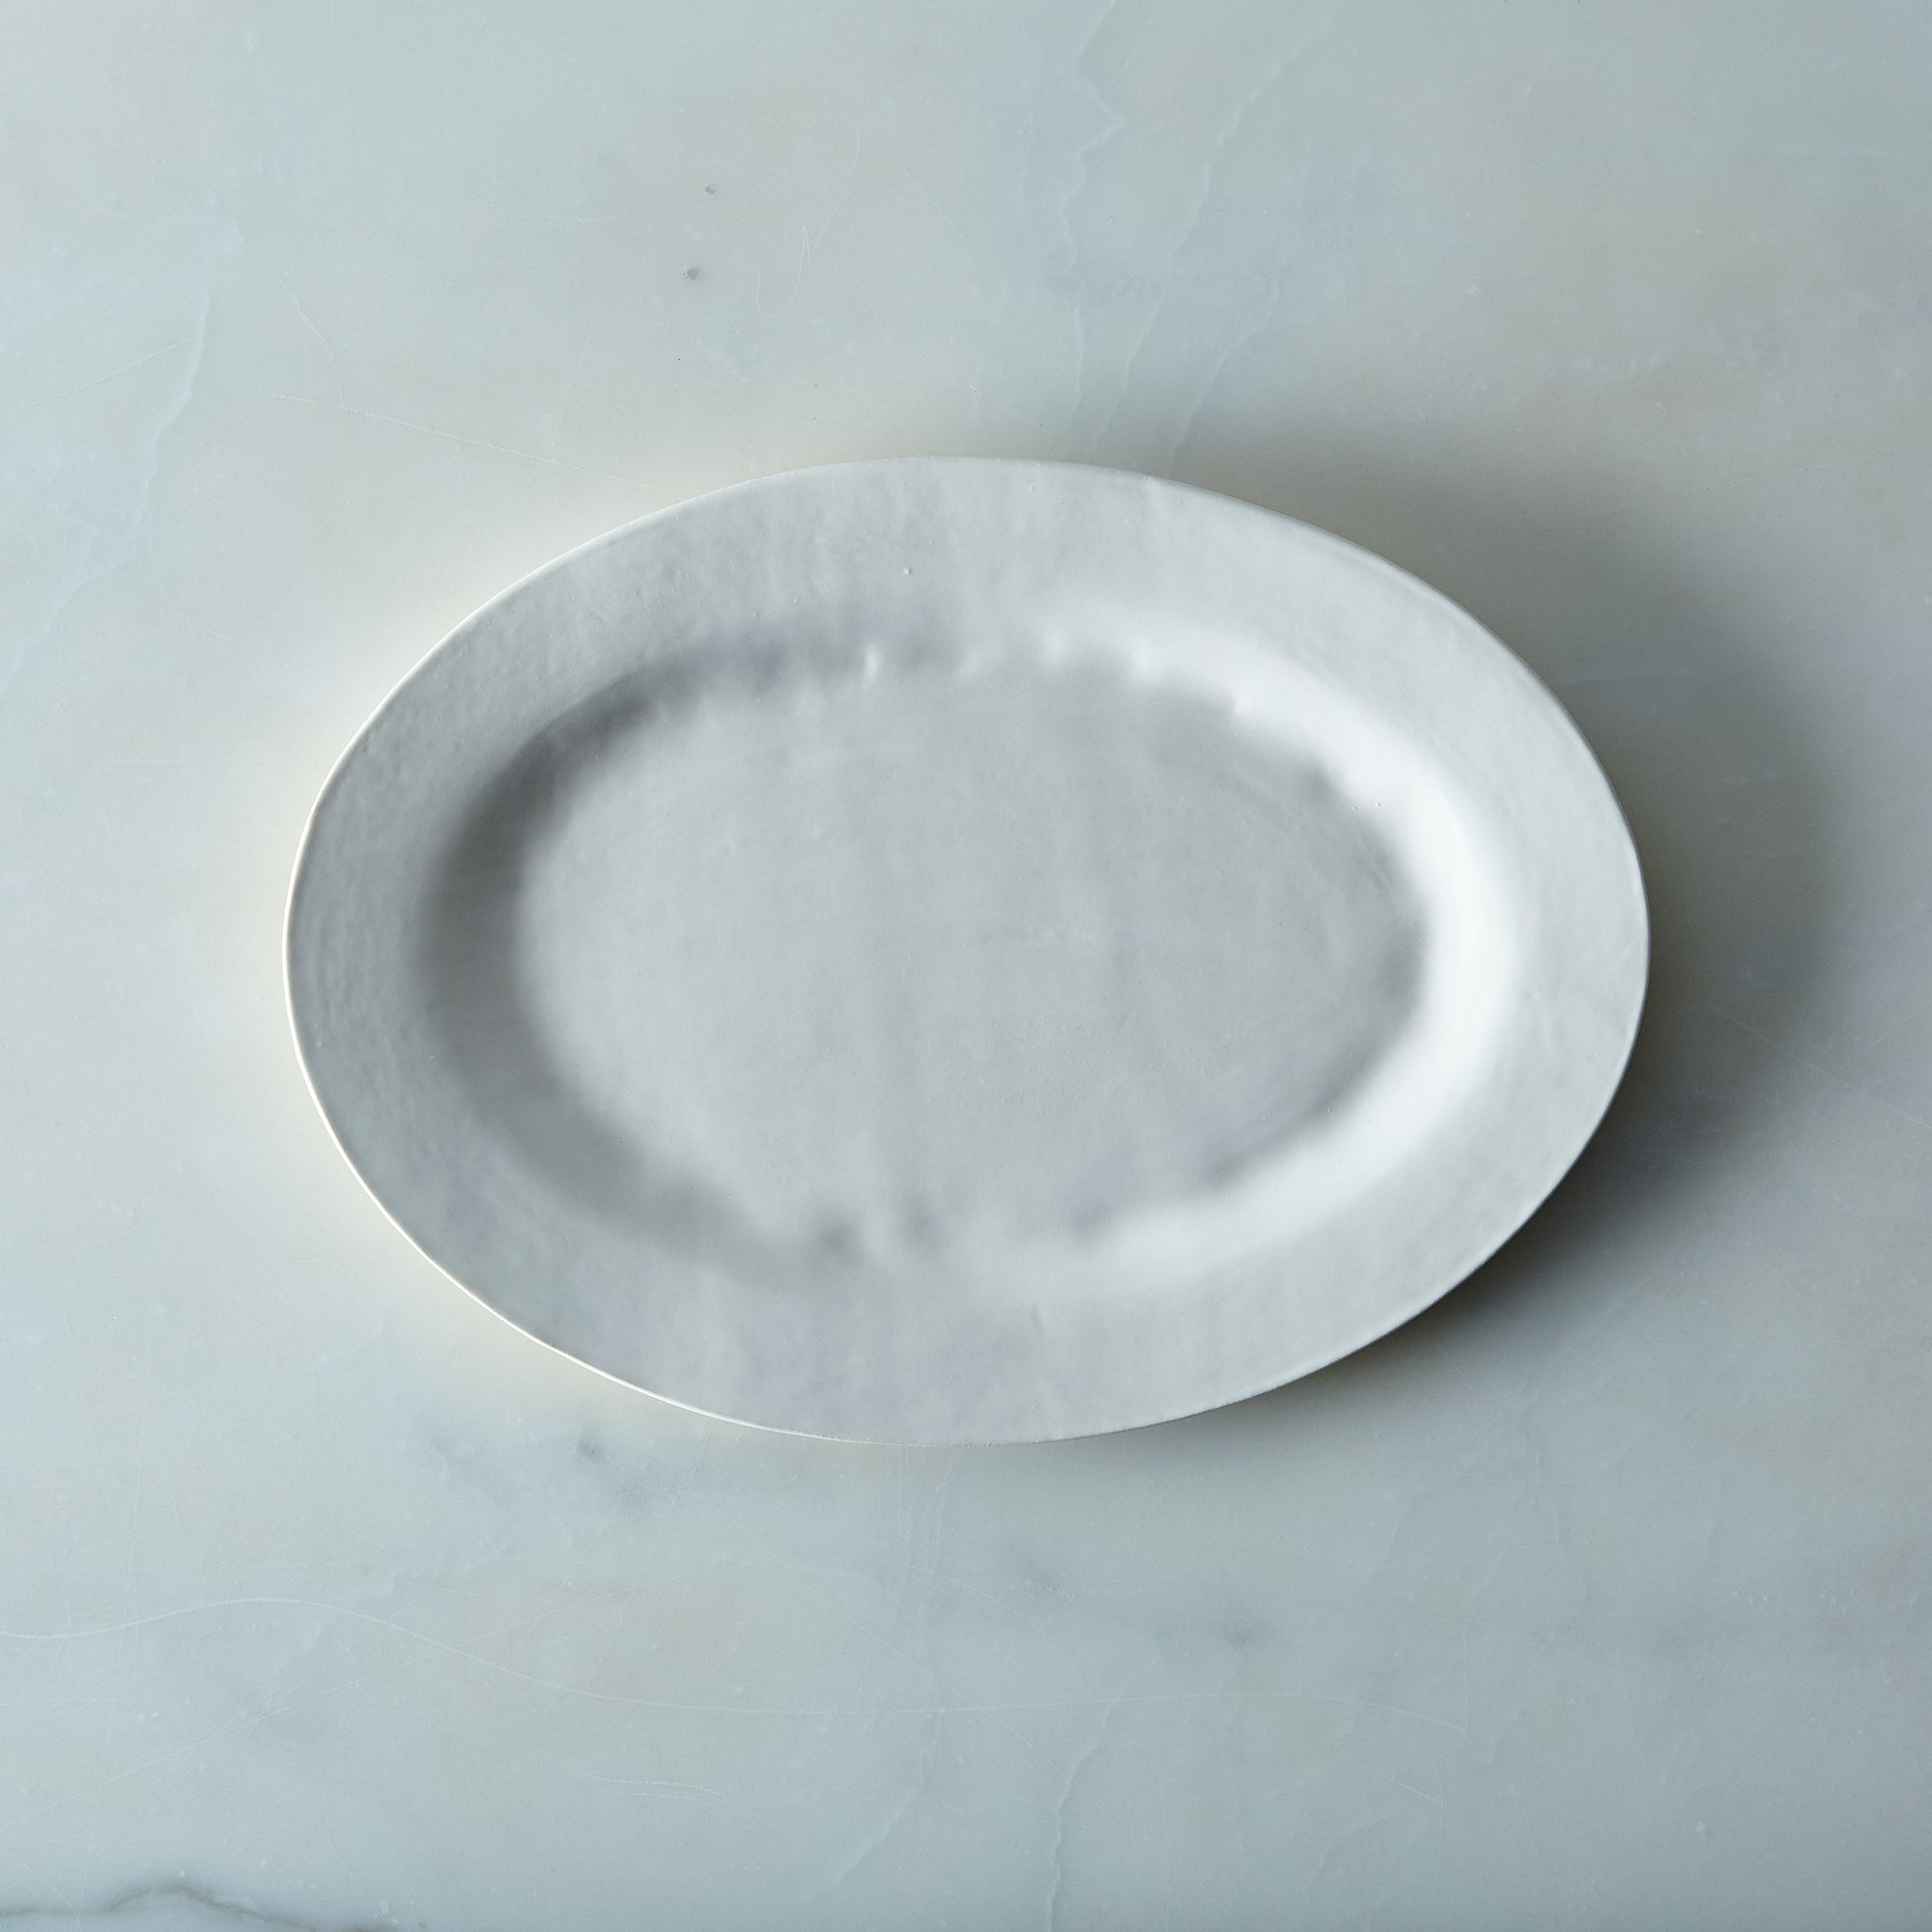 Cd6eca83 e639 47e0 a6ad ccf20f0c803c  2016 0506 looks like white handmade oval serving platter medium silo rocky luten 002